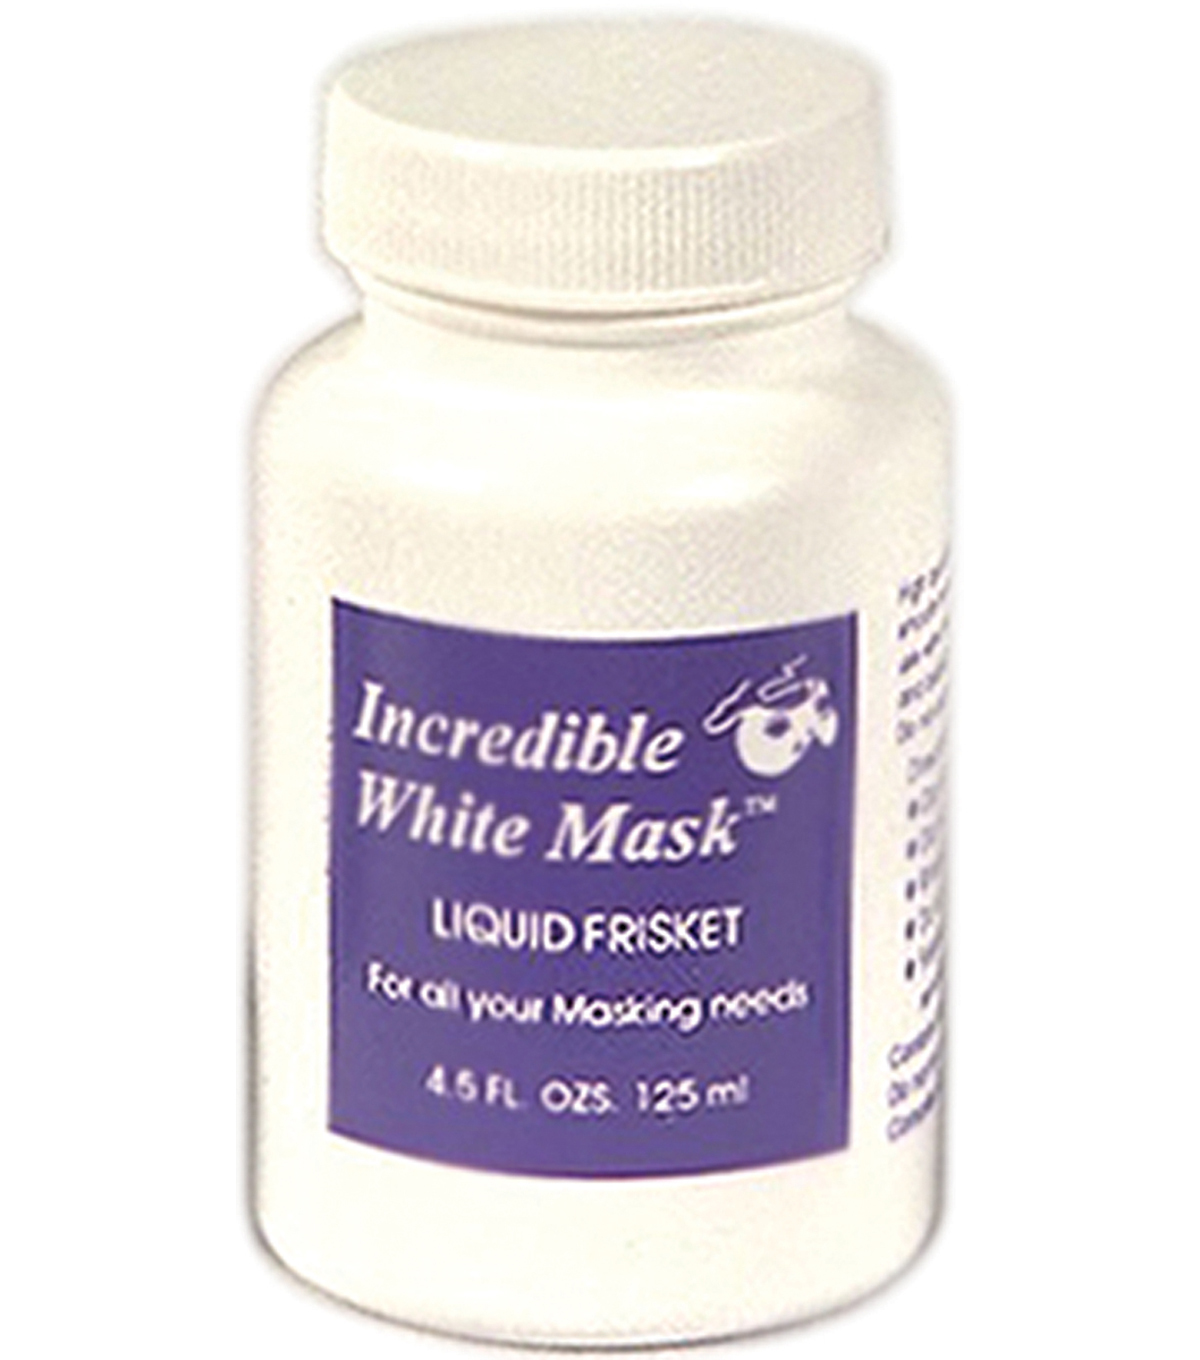 Grafix Incredible White Mask Liquid Frisket-4.5 Ounces